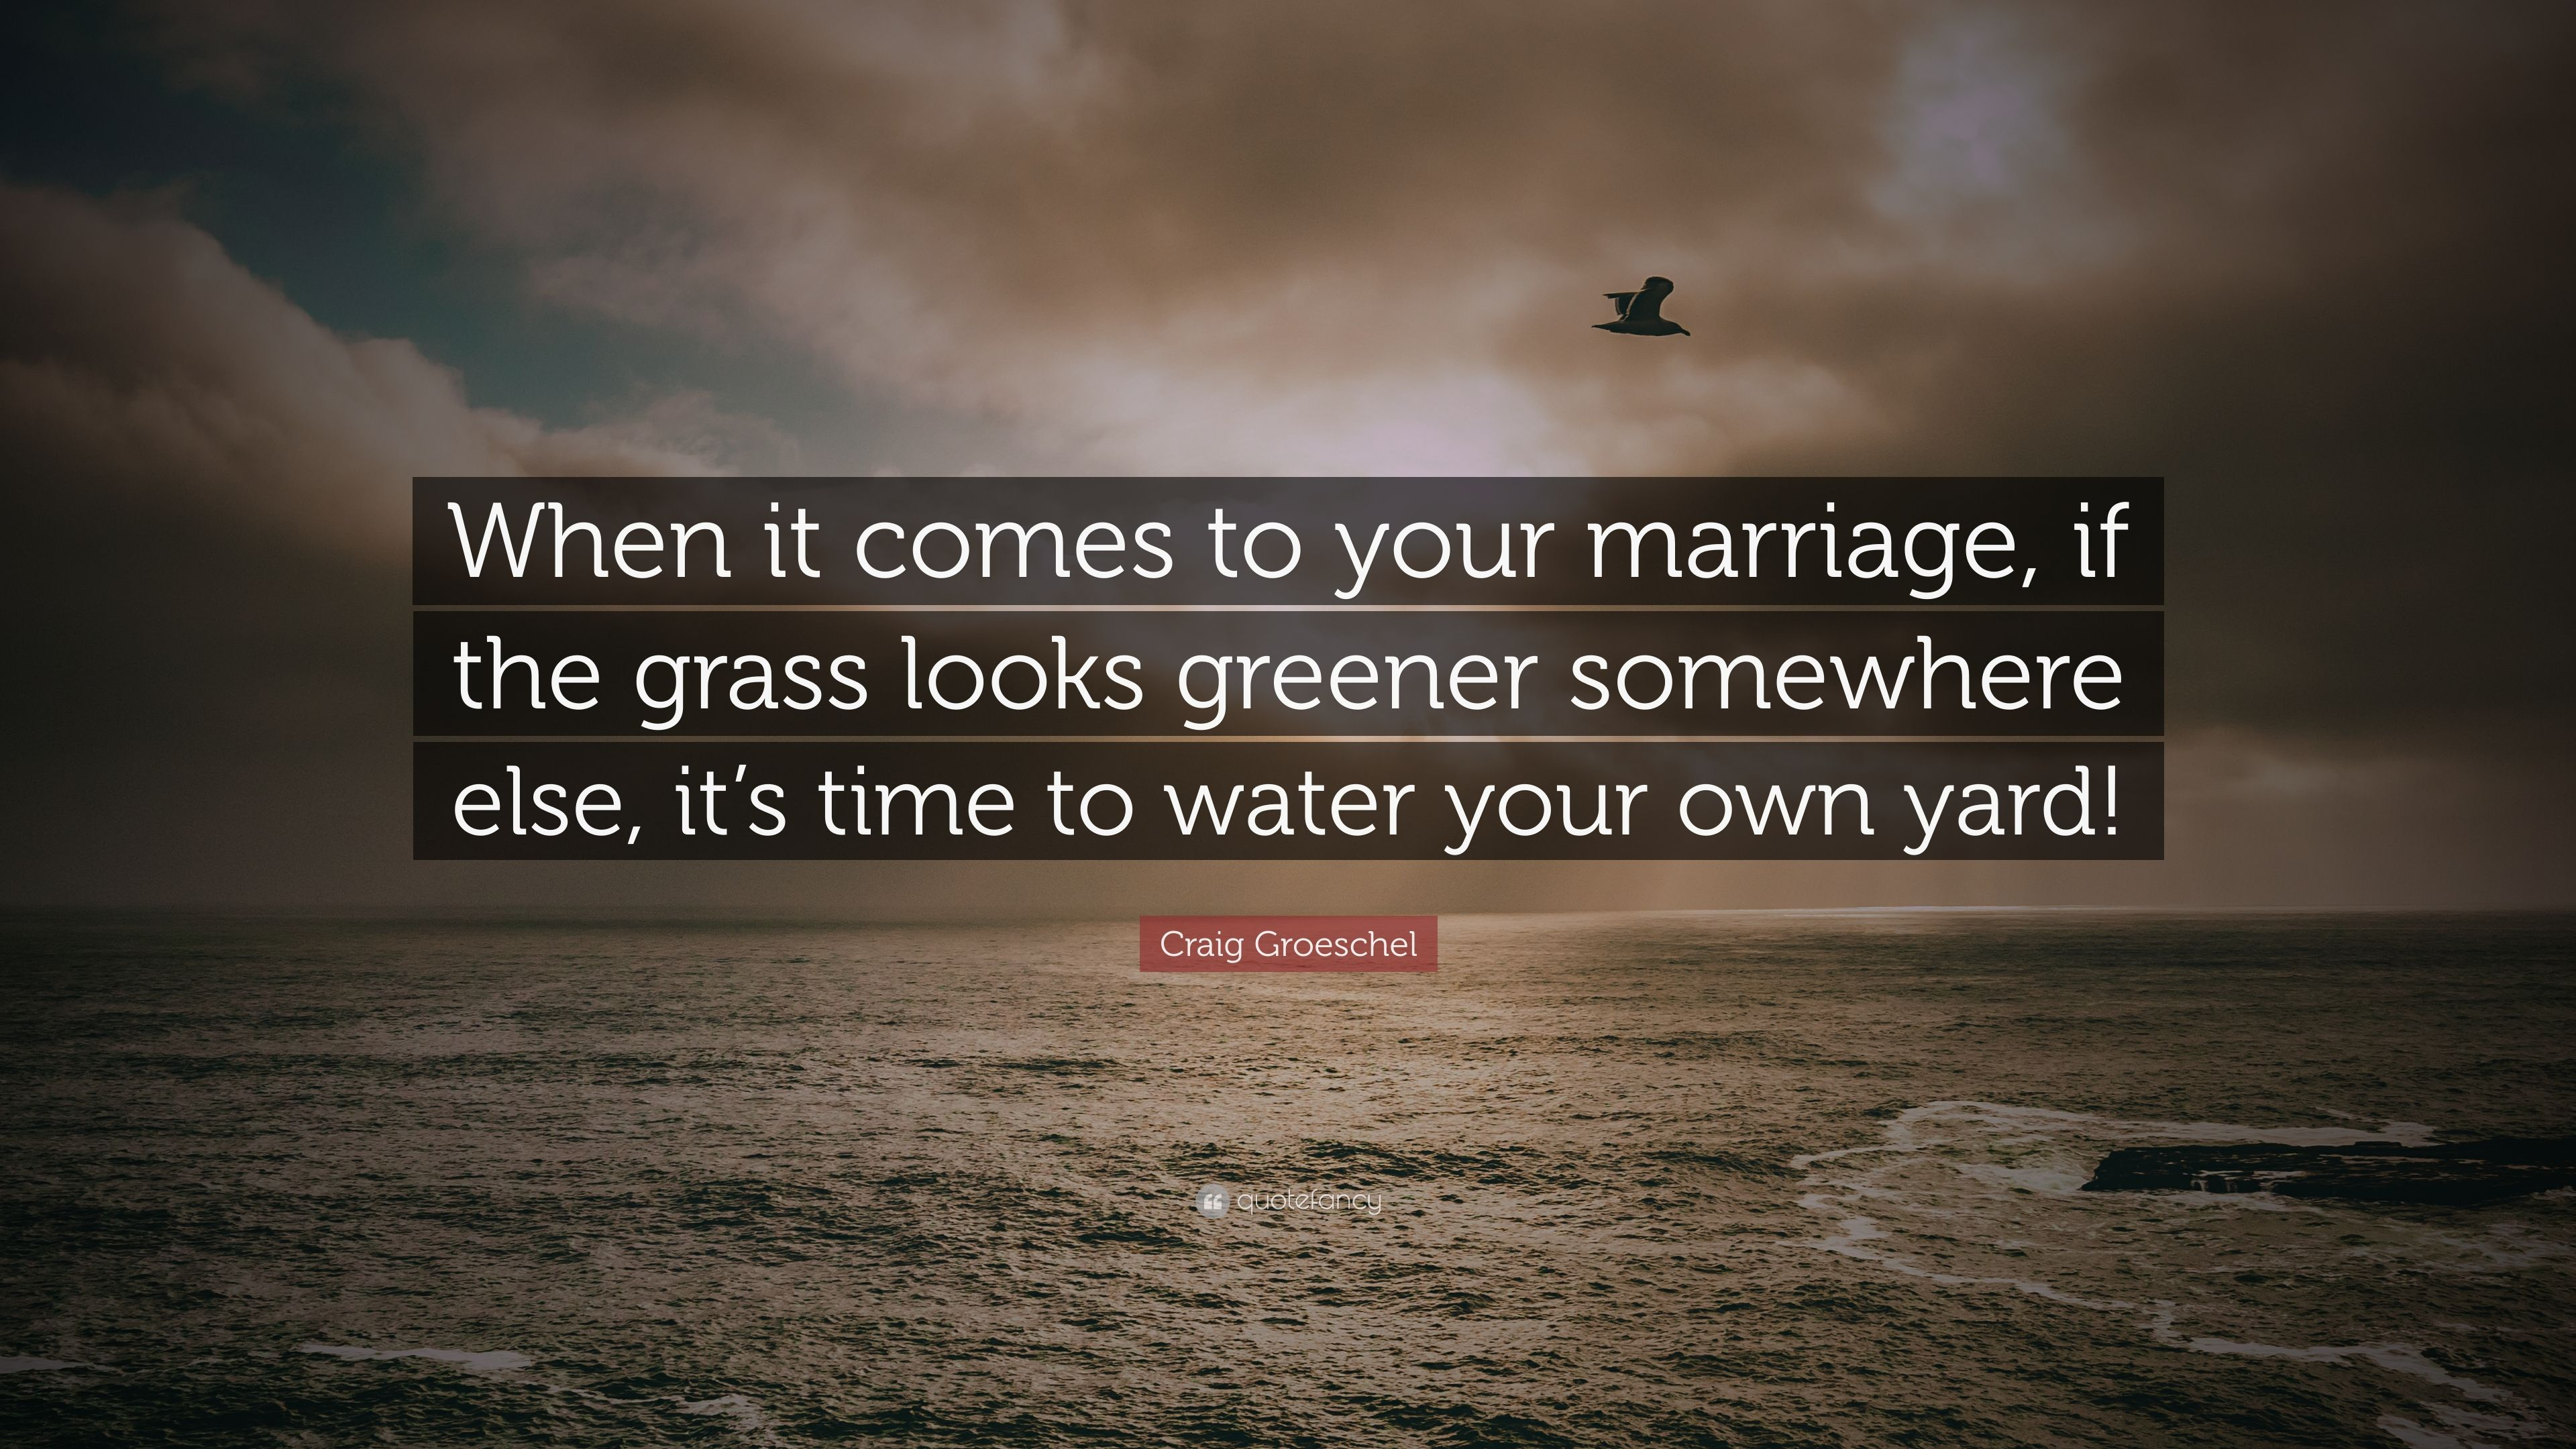 Craig Groeschel Quote When It Comes To Your Marriage If The Grass